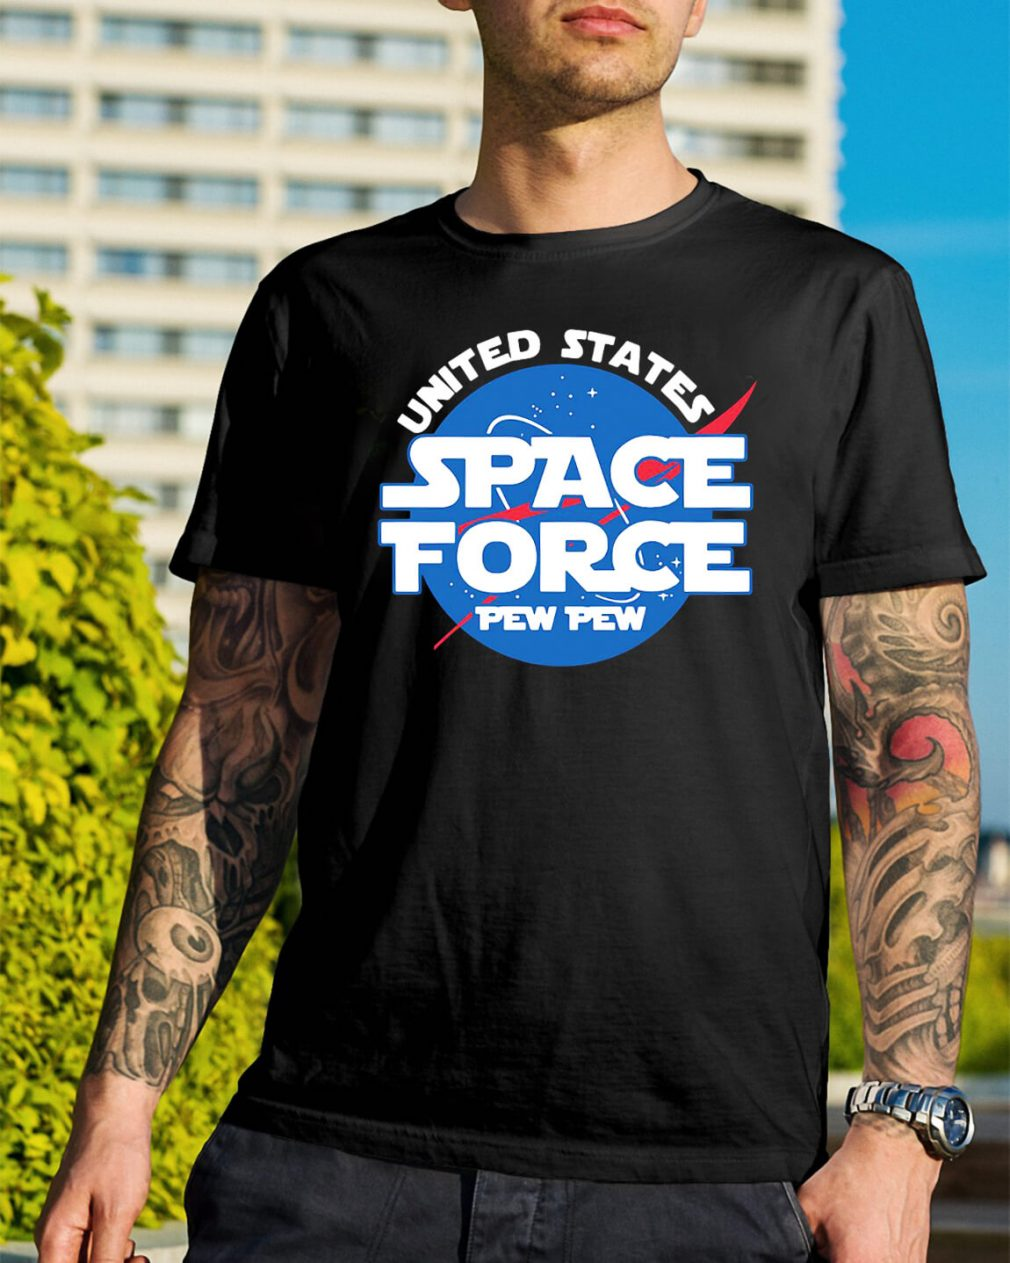 United states space force pewpew shirt